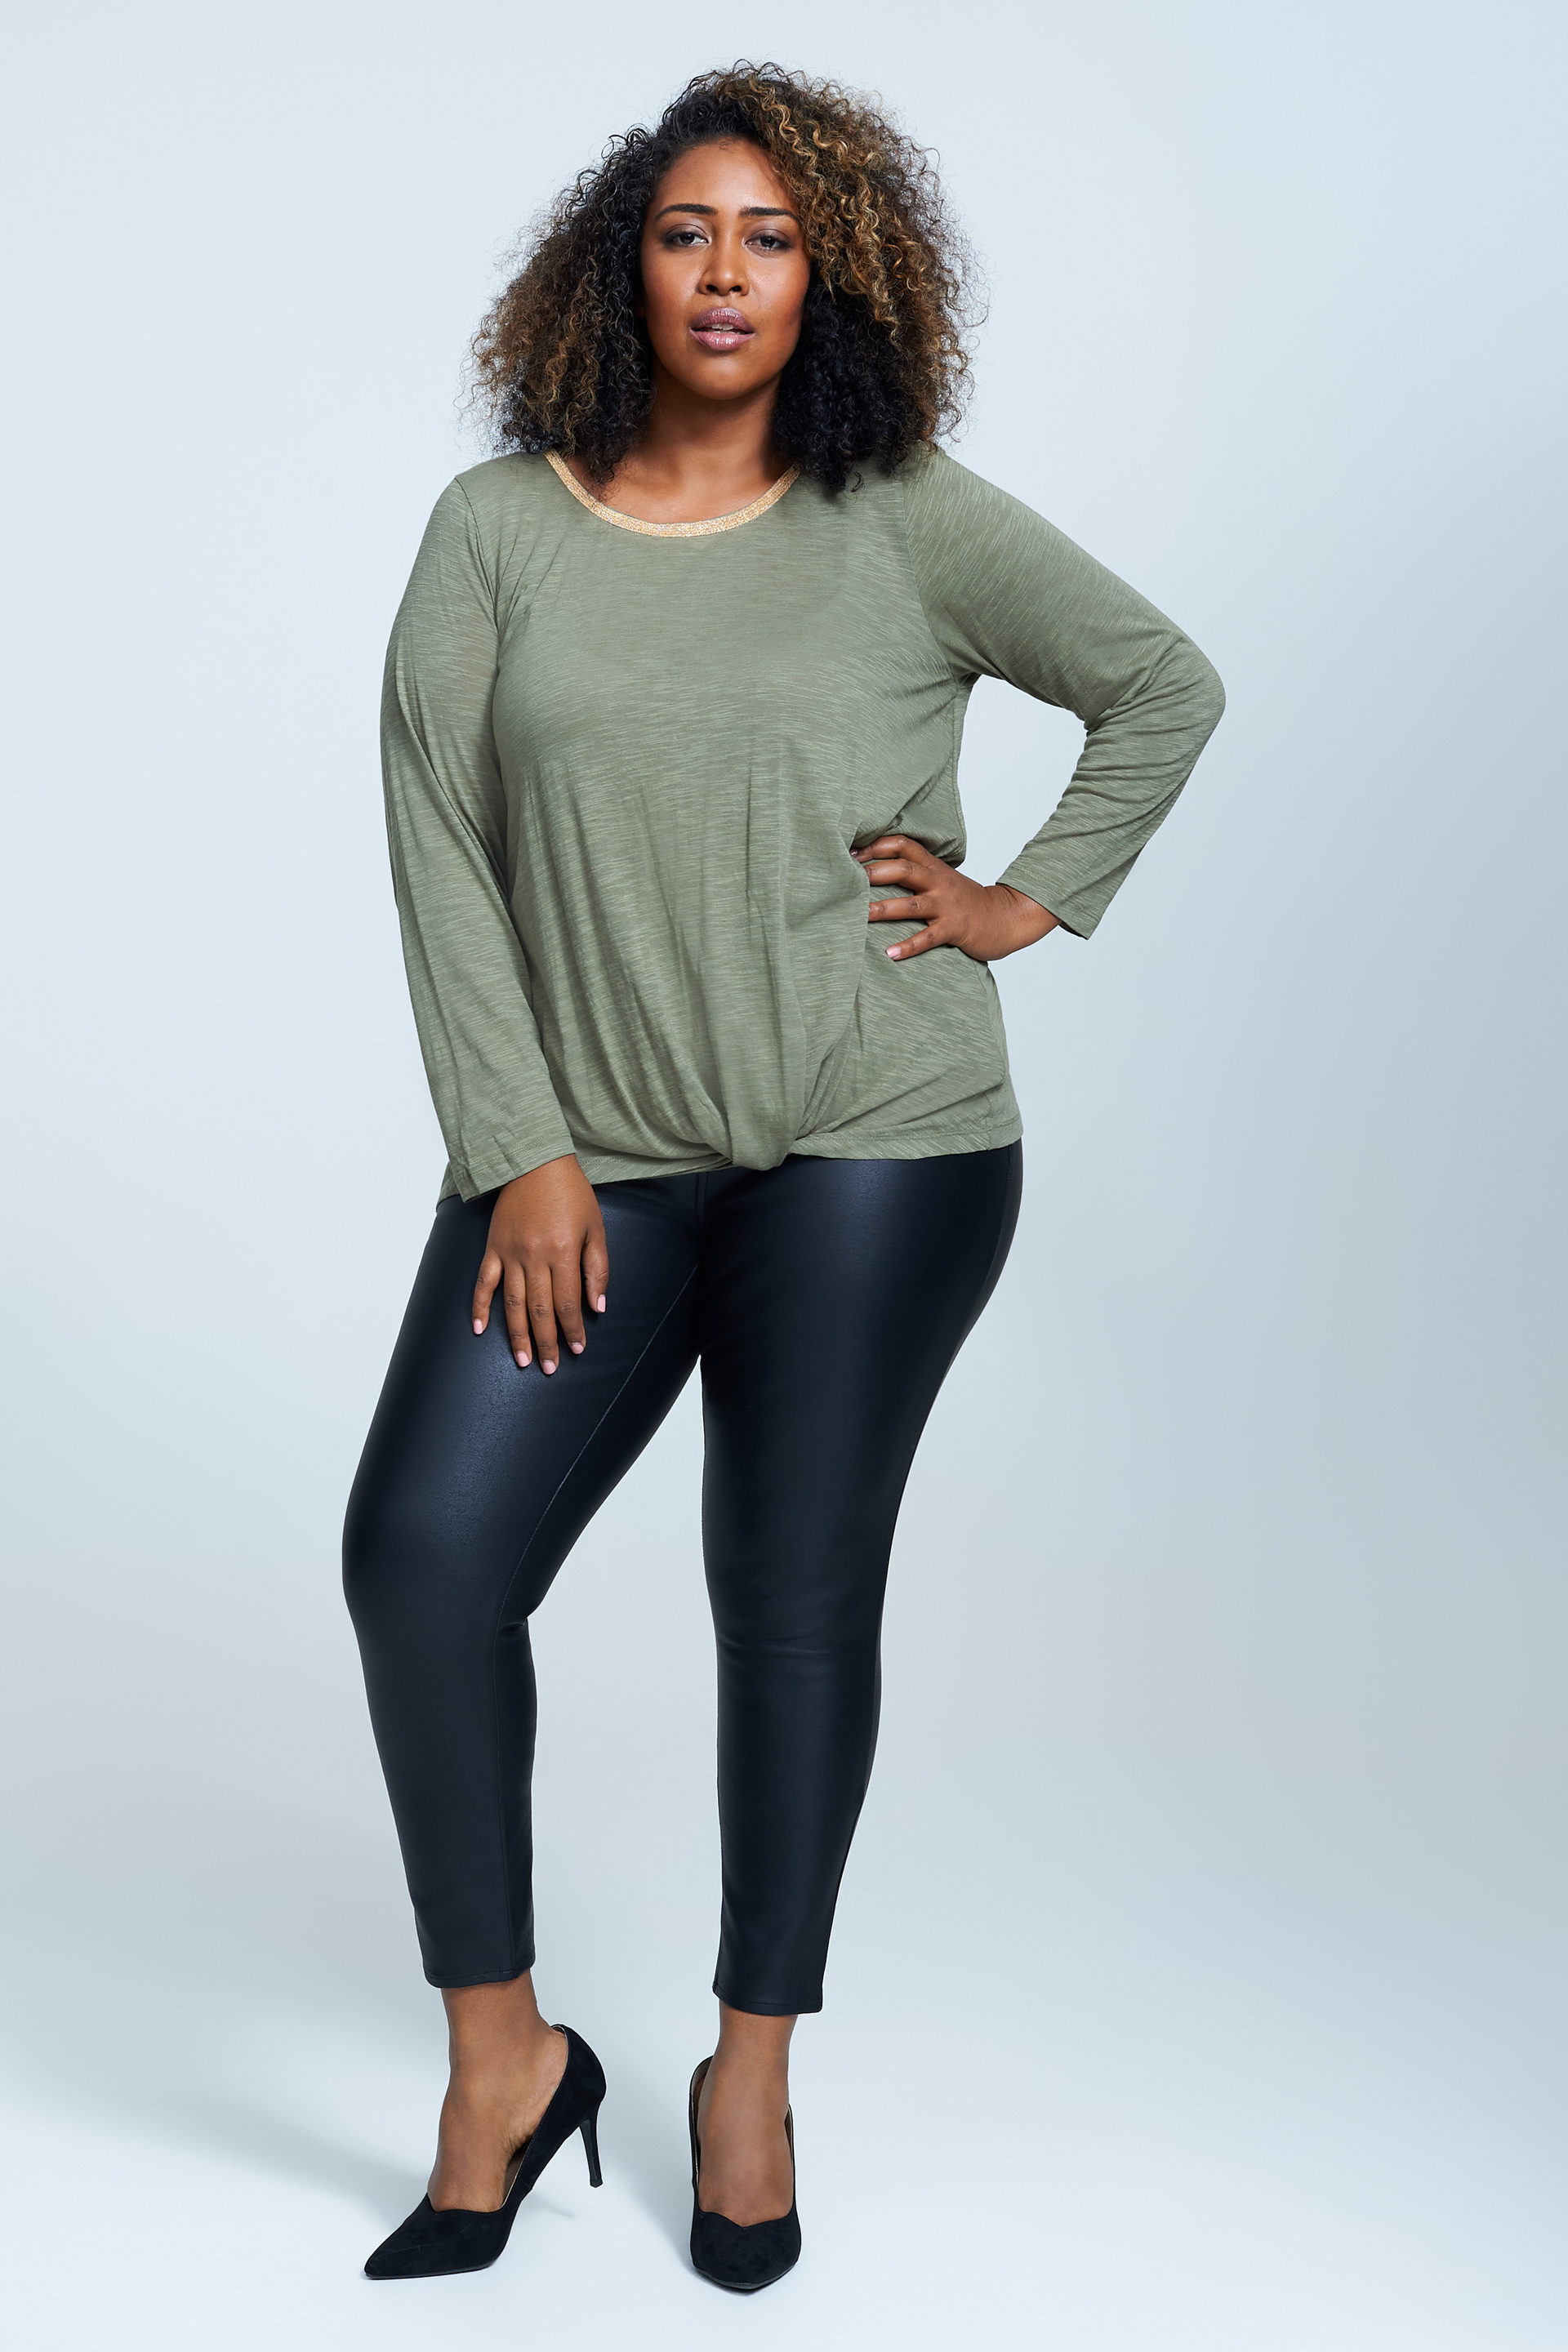 Seven7 Jeans Neck Trimmed Top  <p>Contrast ball trim accents the graceful scoopneck styling of this long-sleeve knit top finished with a draped hemline.</p>